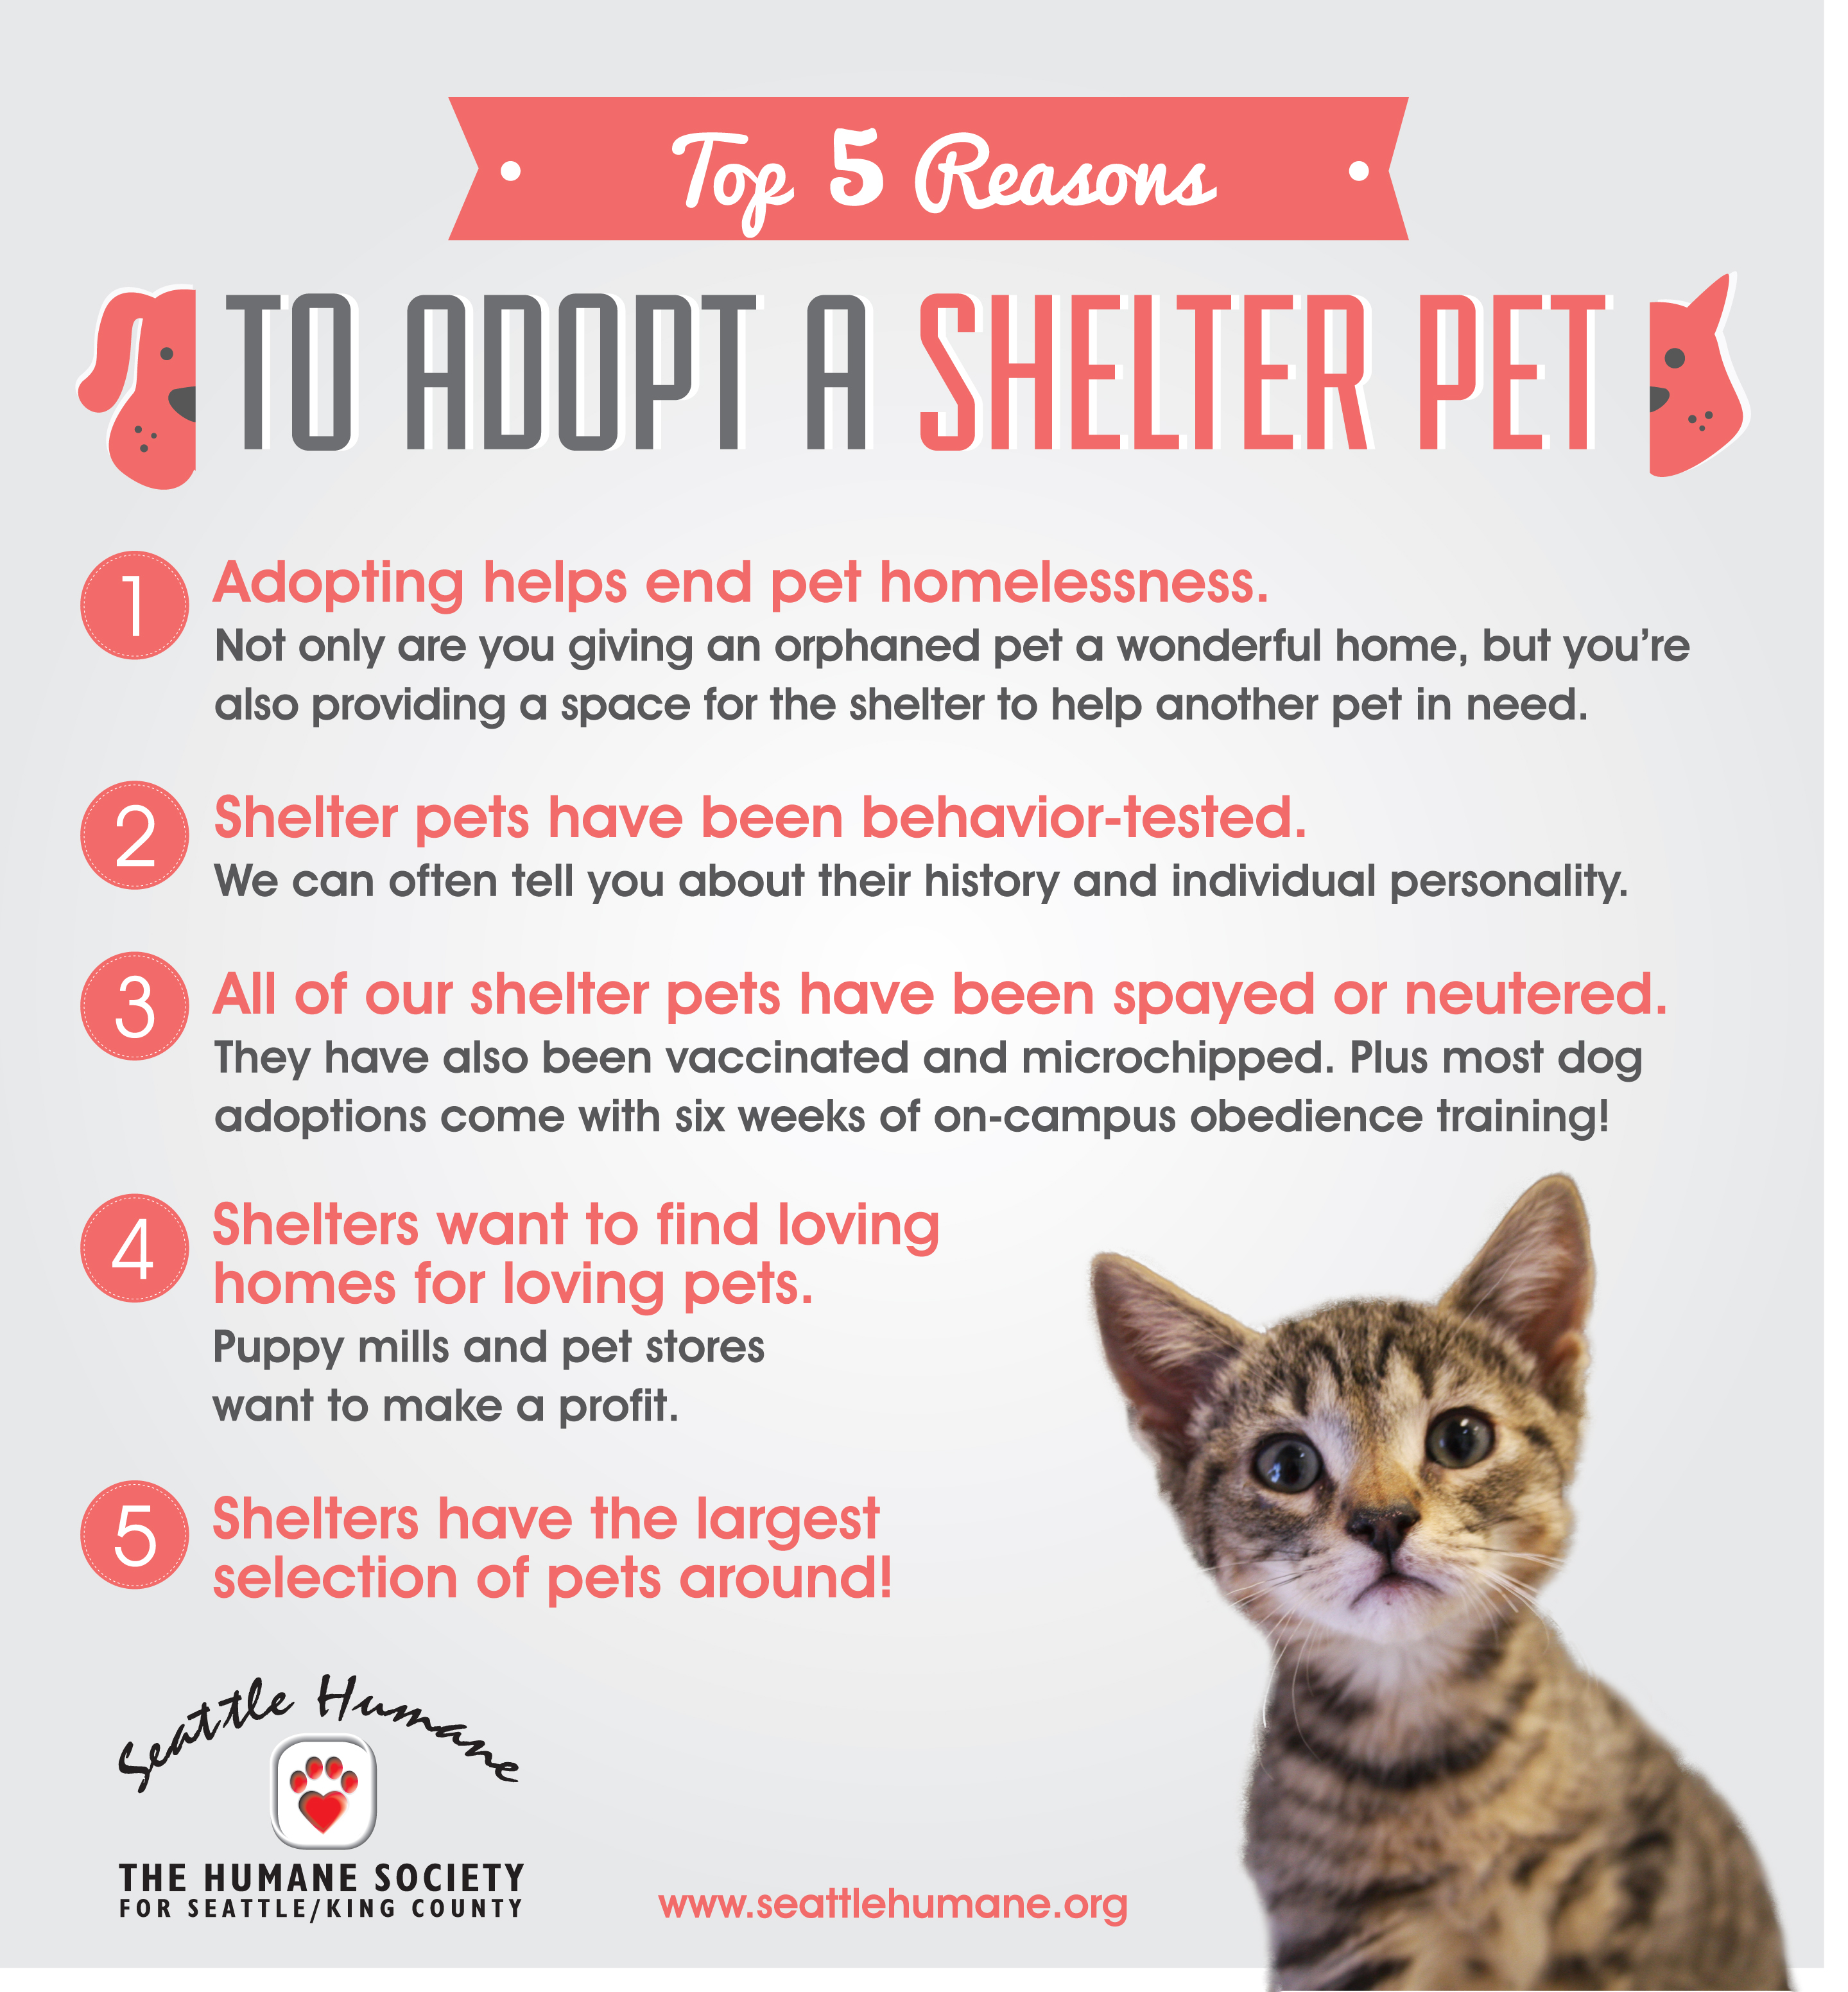 Flyer from the Humane Society for Seattle / King County, Washington